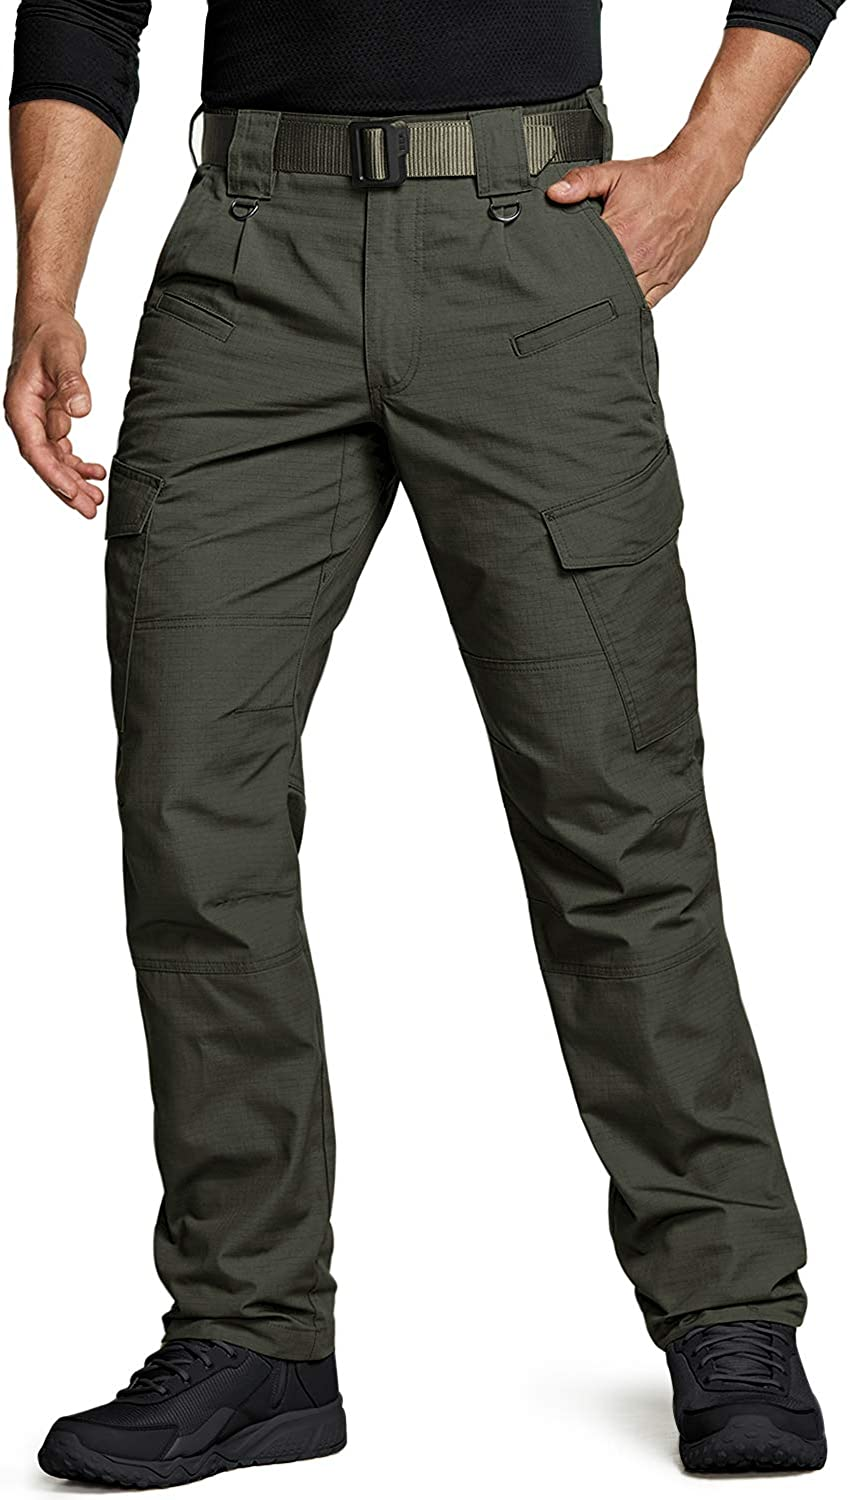 Lightweight EDC Hiking Work Trouser CQR Mens Tactical Trousers Water Repellent Ripstop Cargo Pants Outdoor Apparel